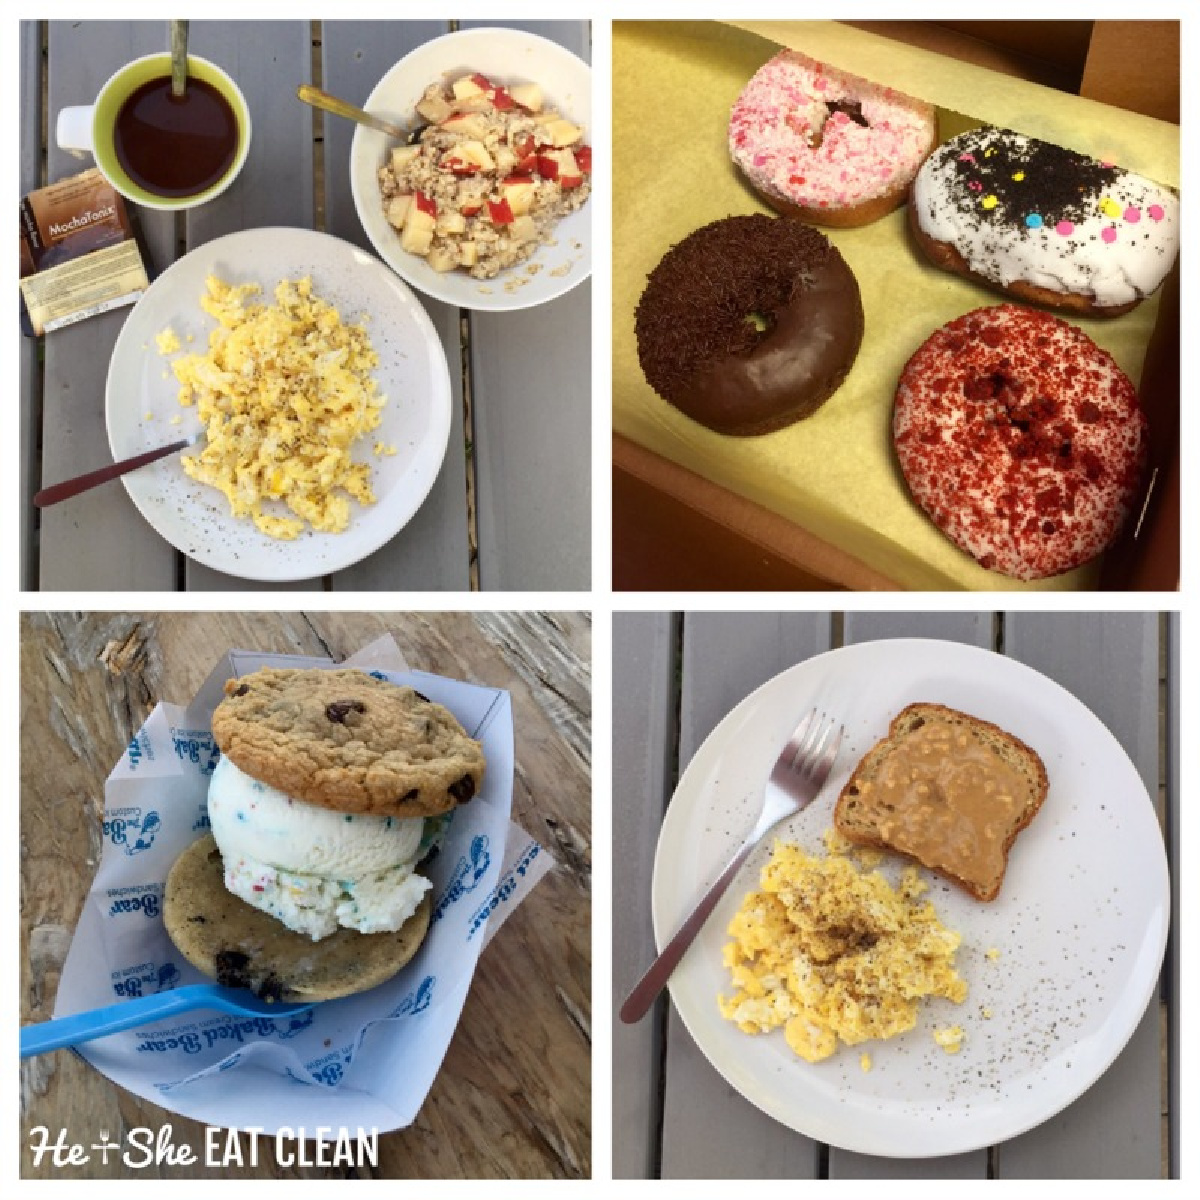 collage picture of eggs and oatmeat and eggs and toast with donuts and an ice cream sandwich